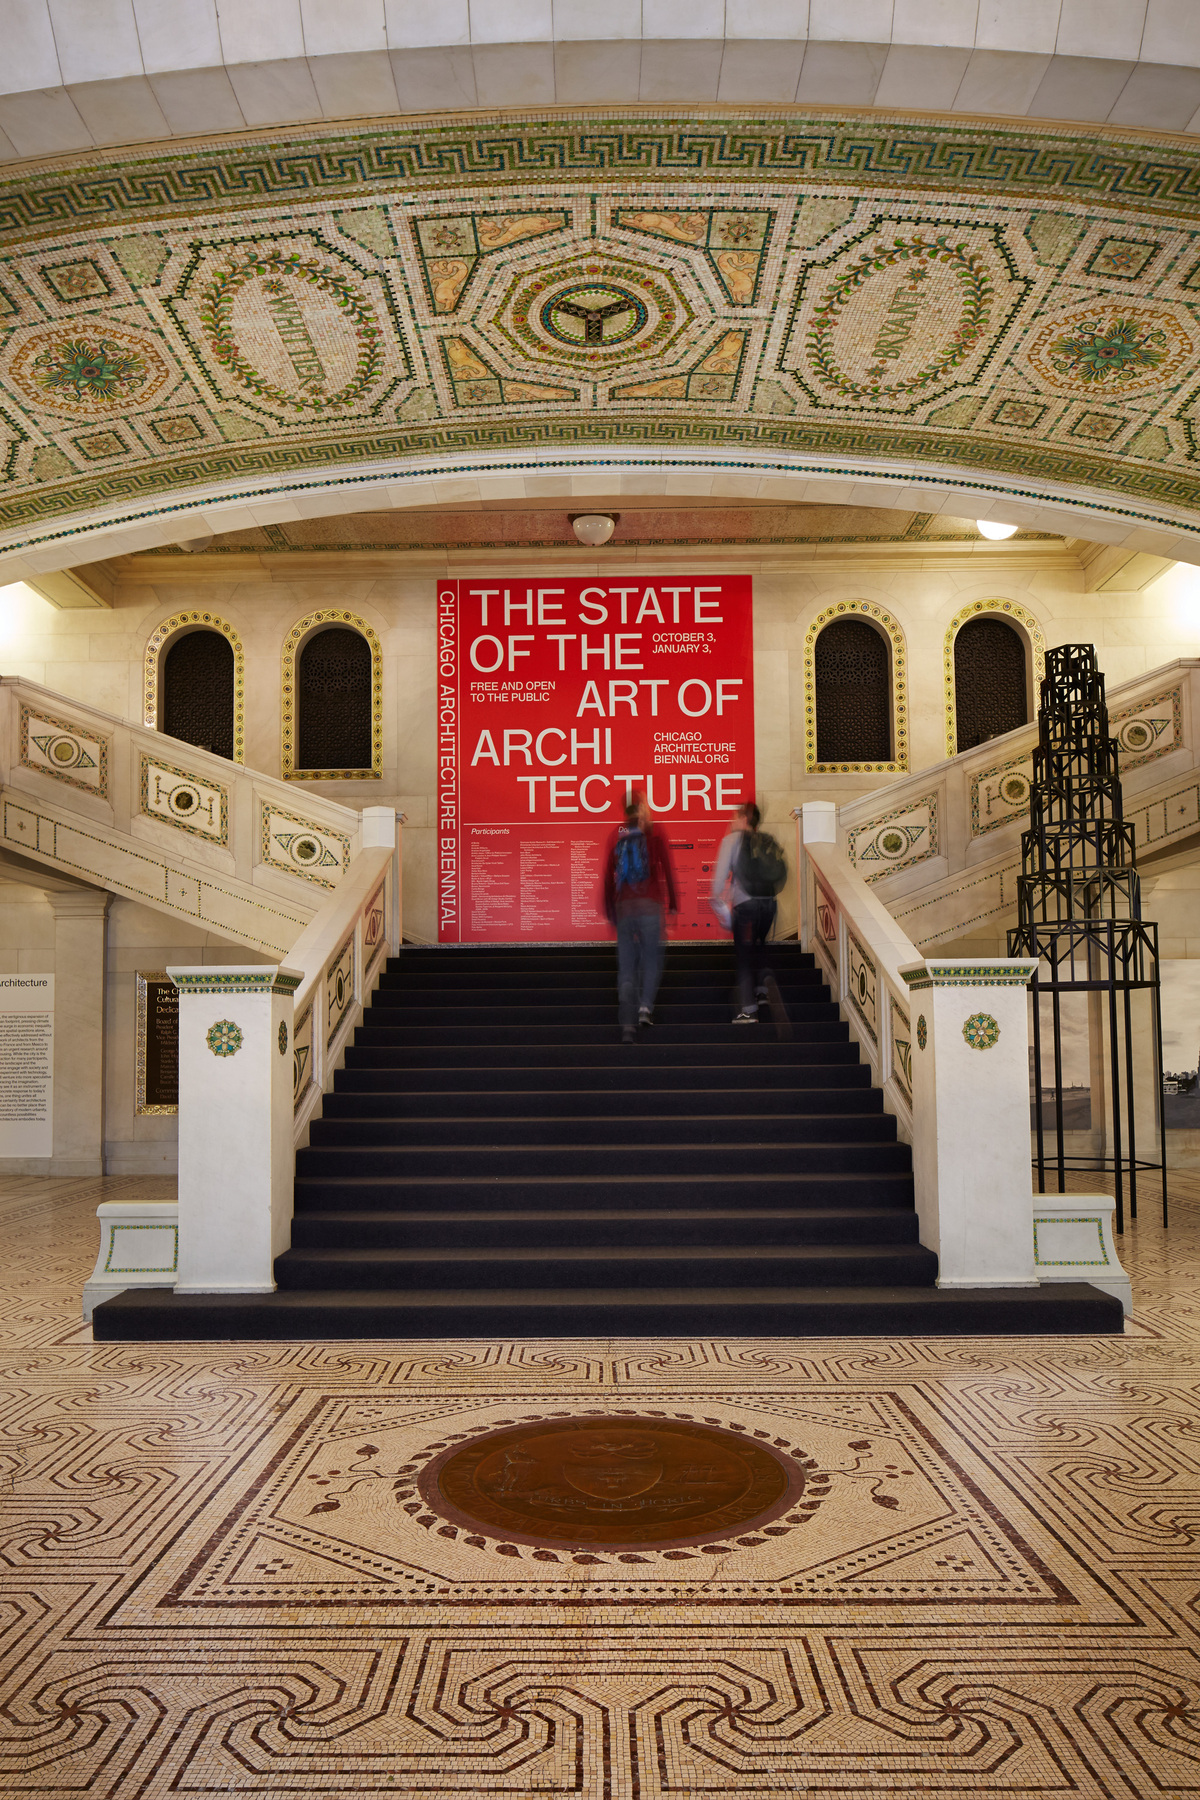 Entrance to the Biennial. Photo by Steve Hall, courtesy of the Chicago Architecture Biennial.